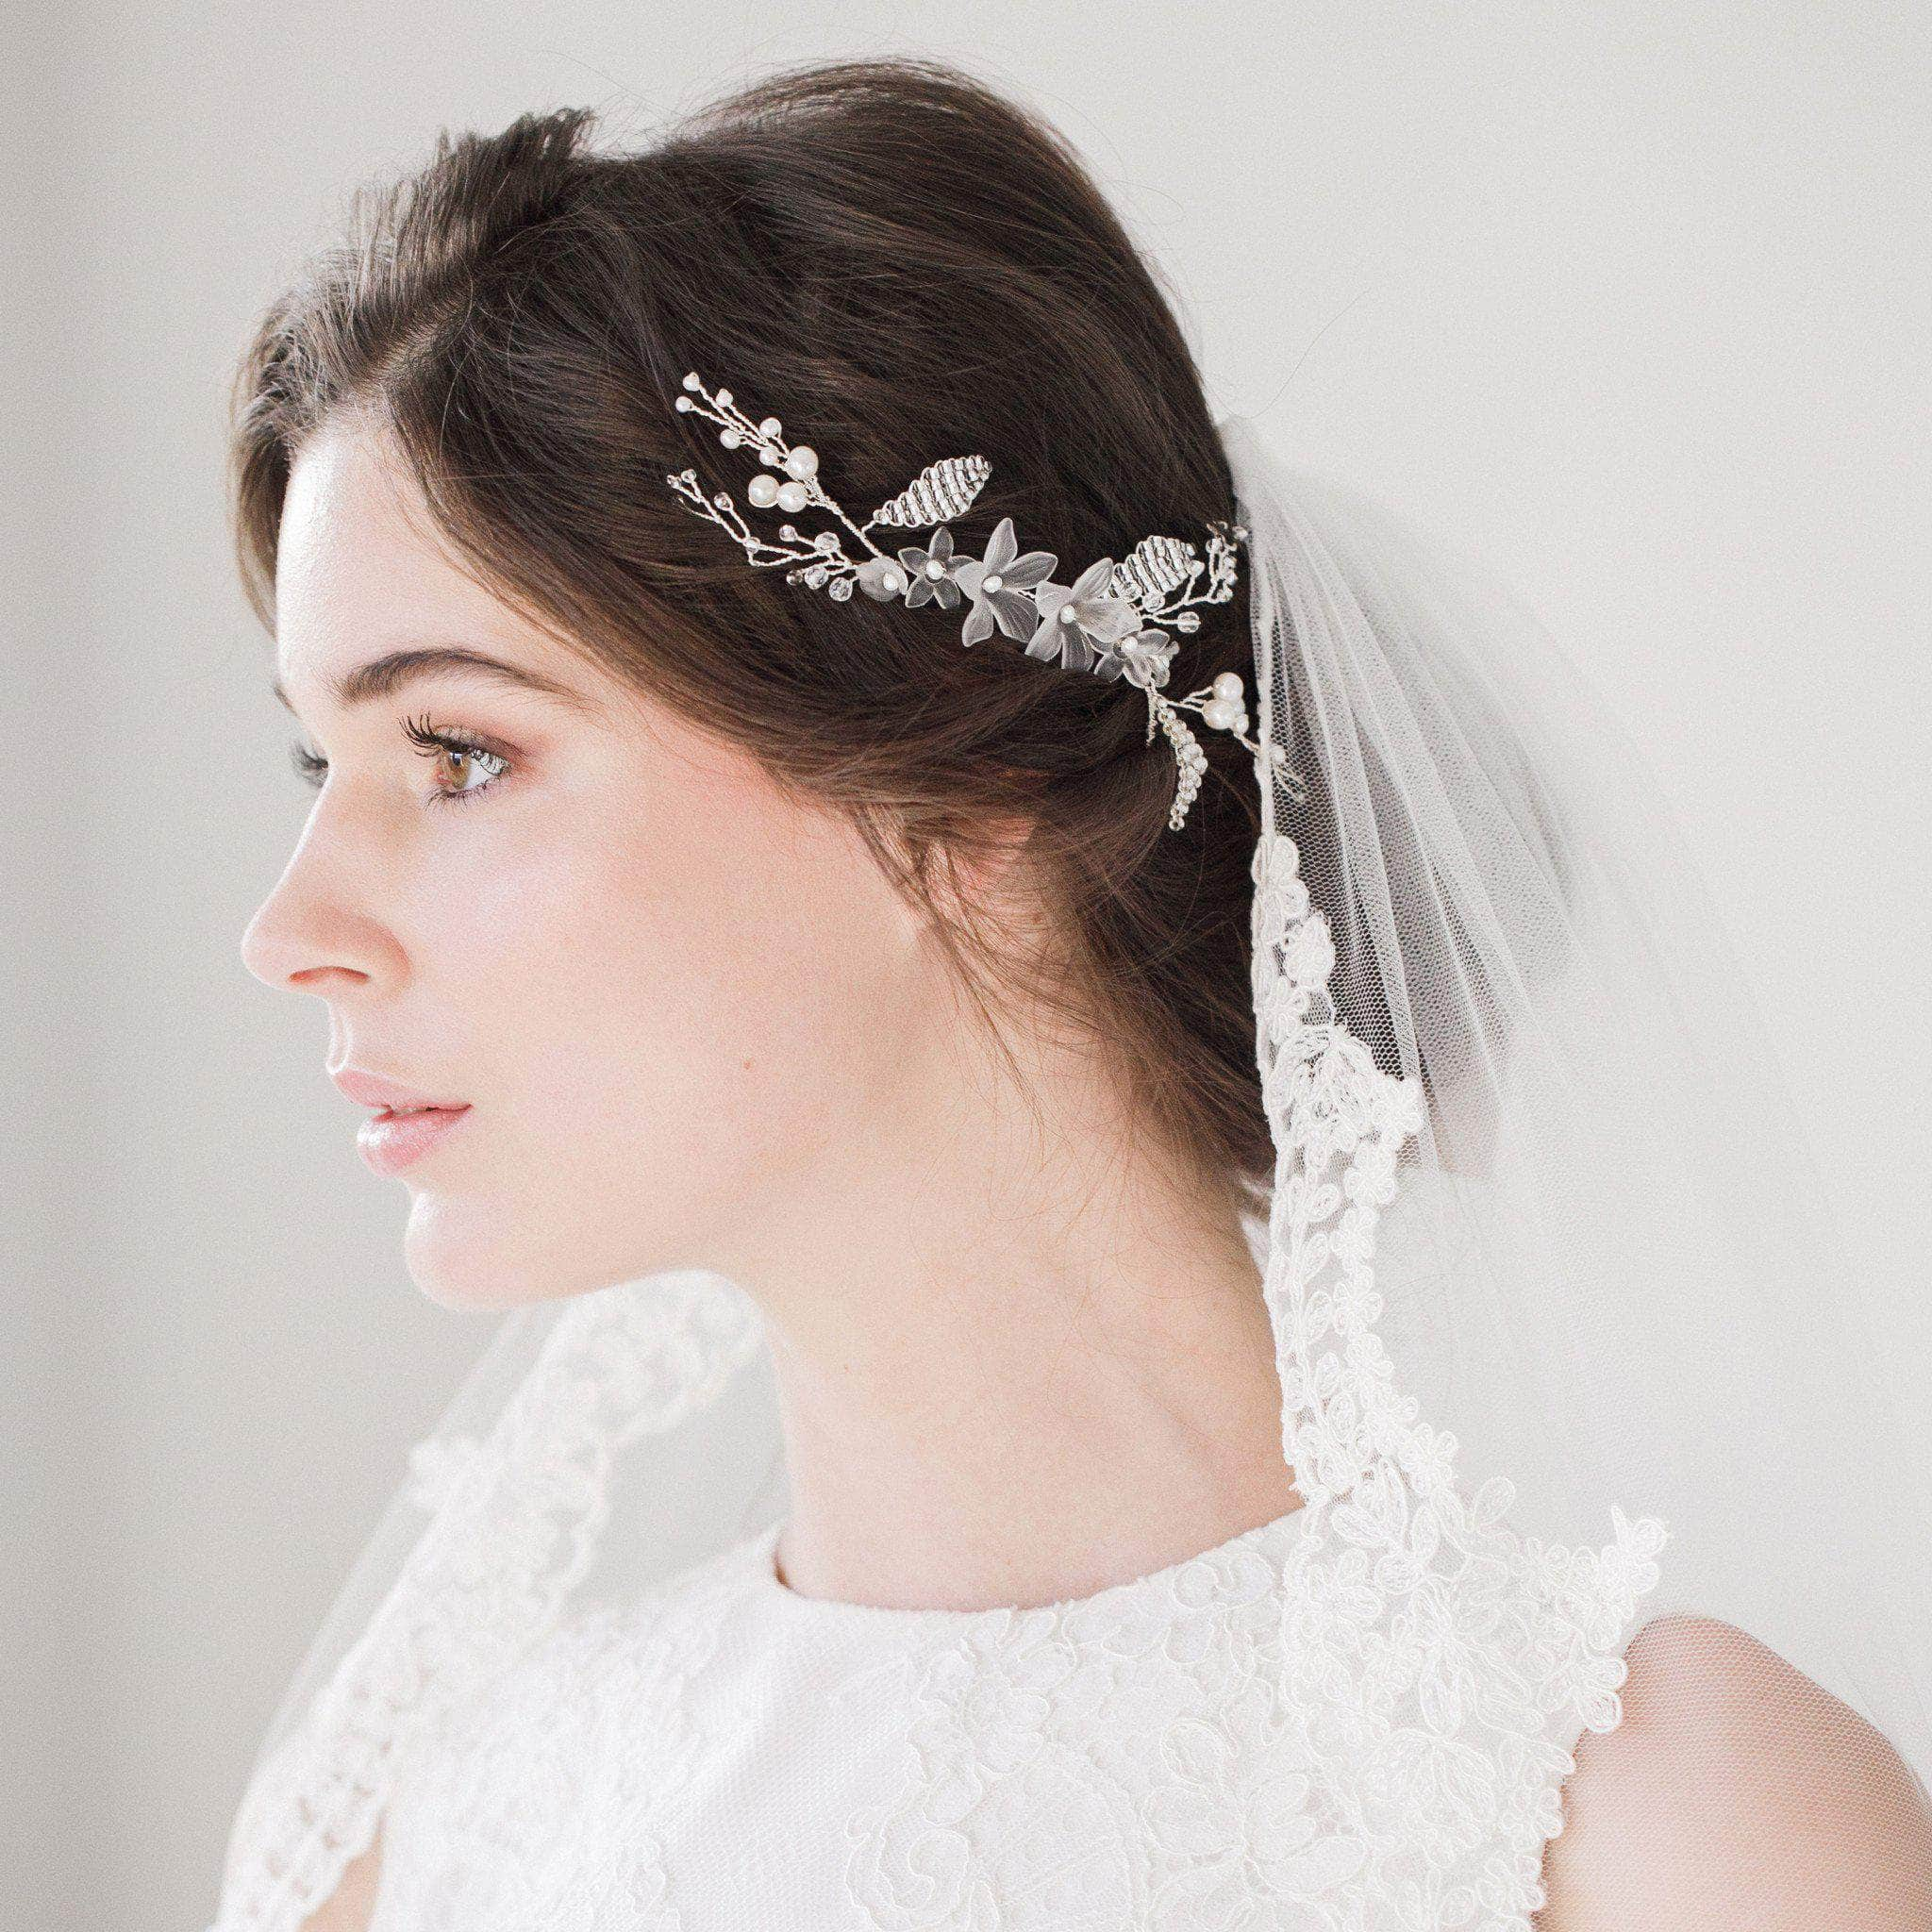 Floral Wedding Hair Comb By Britten: Silver Floral Wedding Hair Vine - 'Grace'